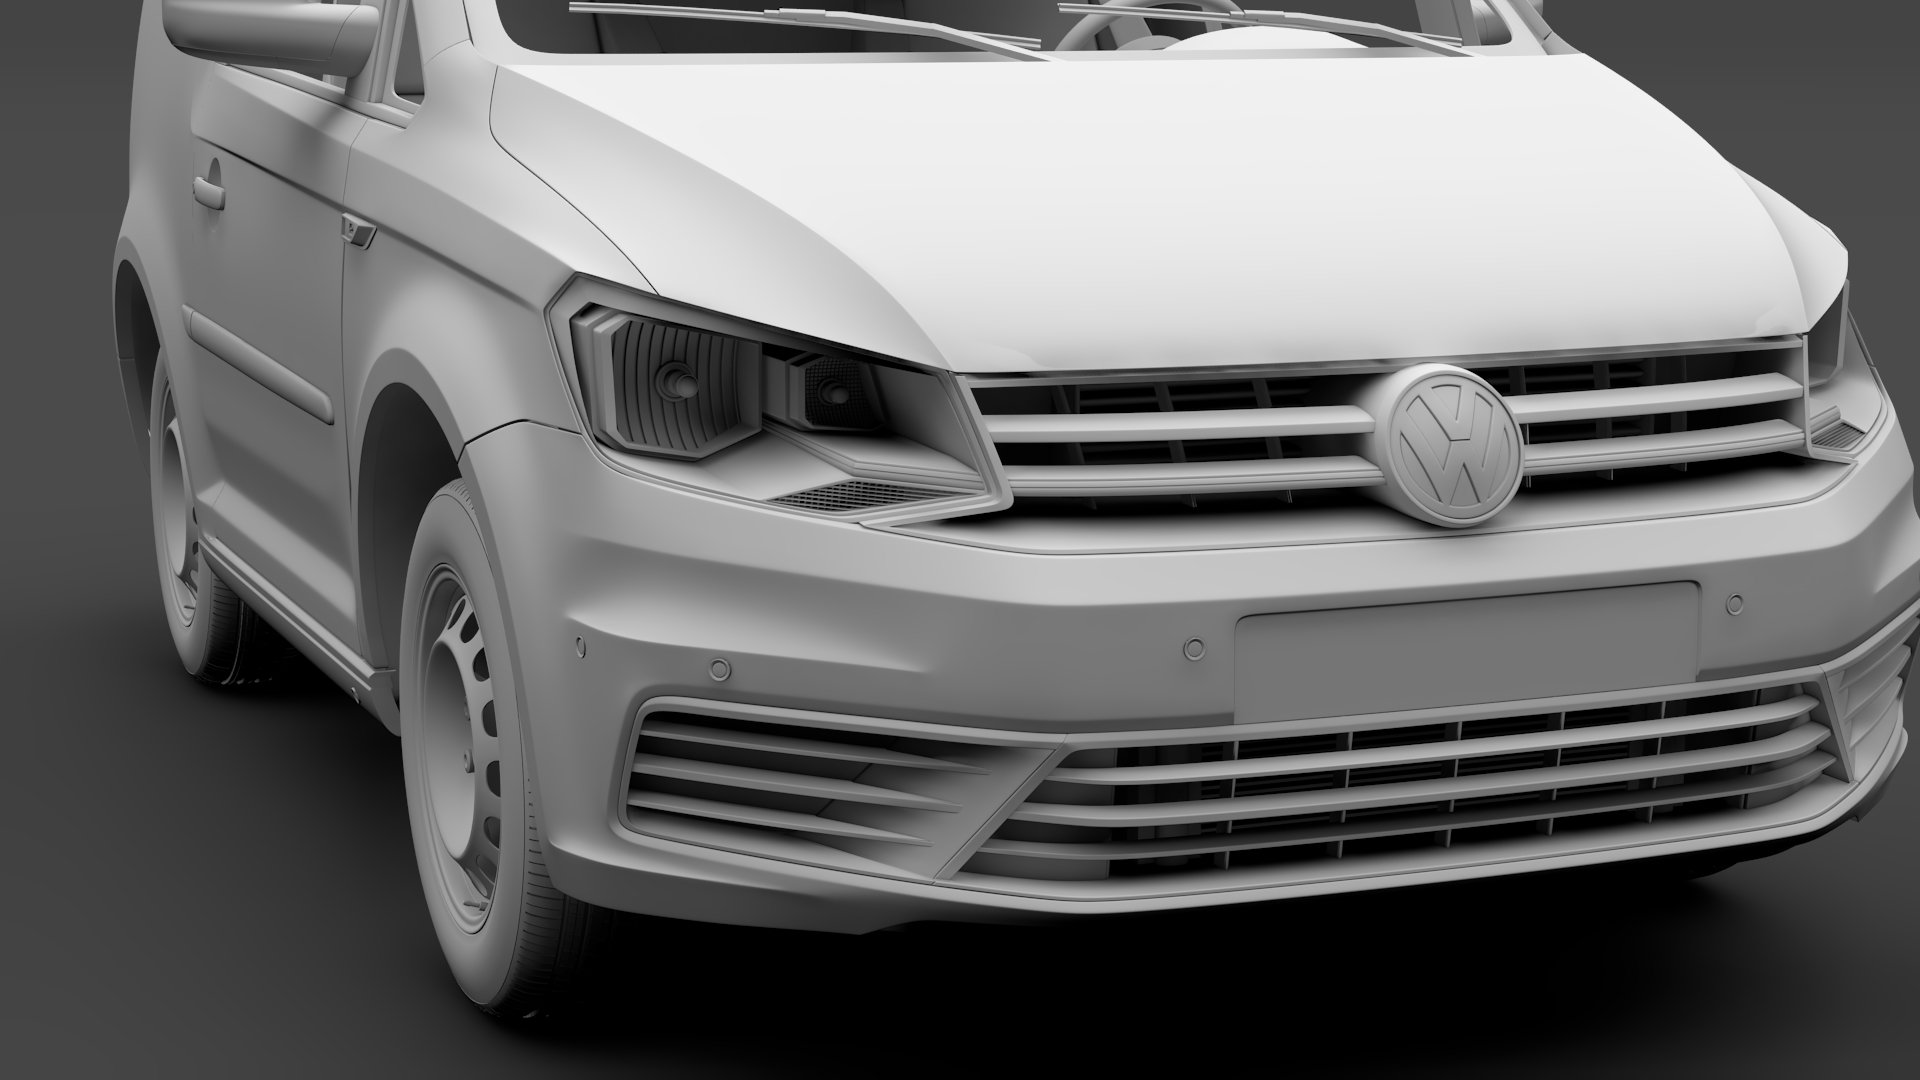 volkswagen caddy one man van 2017 3d model max fbx c4d lwo ma mb hrc xsi obj 275452